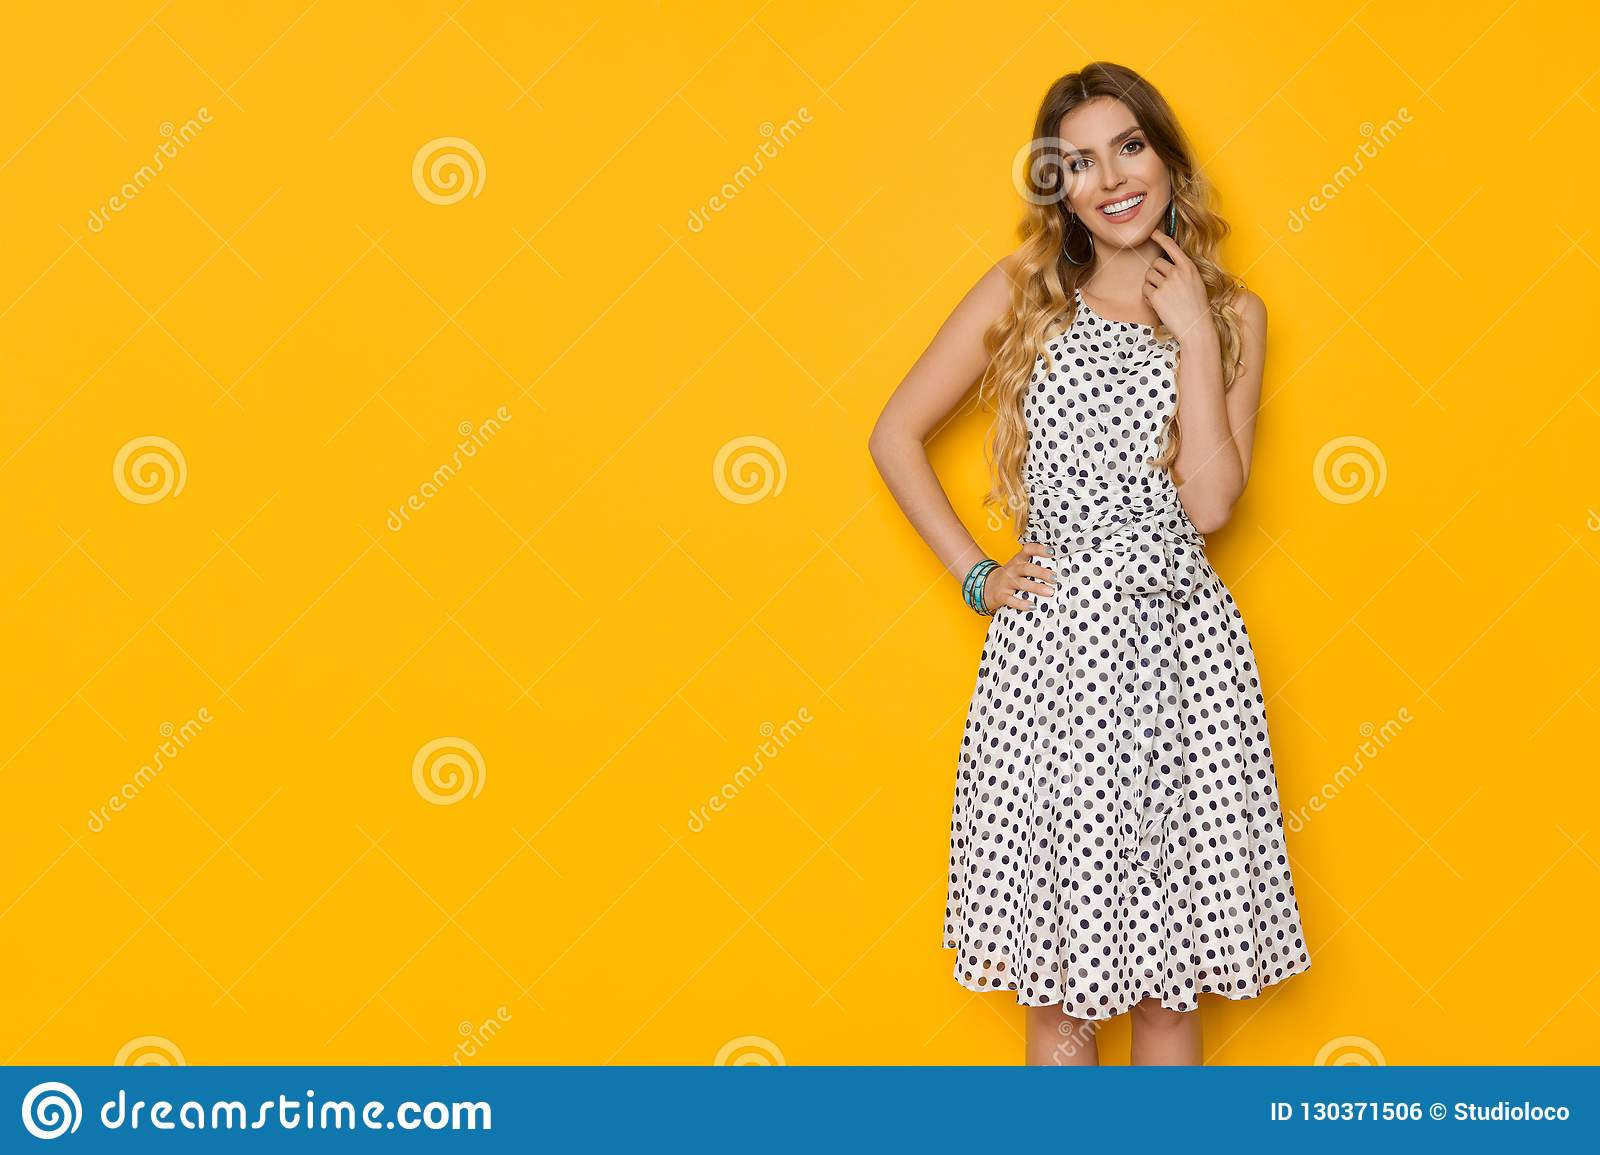 8861cec12eb1 Beautiful young woman in white dotted summer dress is posing with hand on  hip